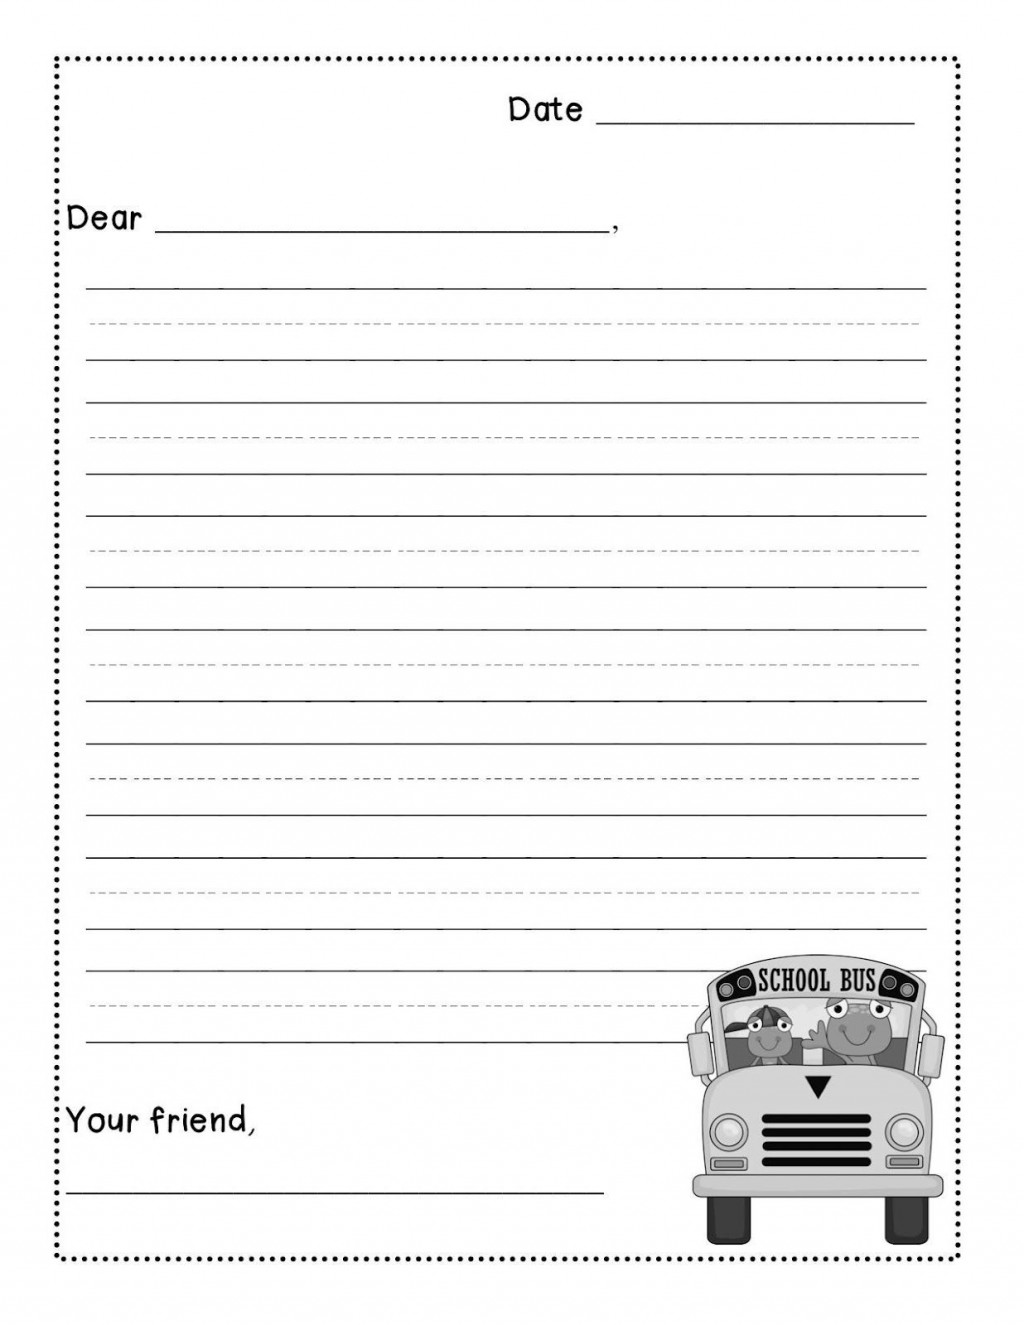 000 Beautiful Free Letter Writing Template 2nd Grade Sample Large